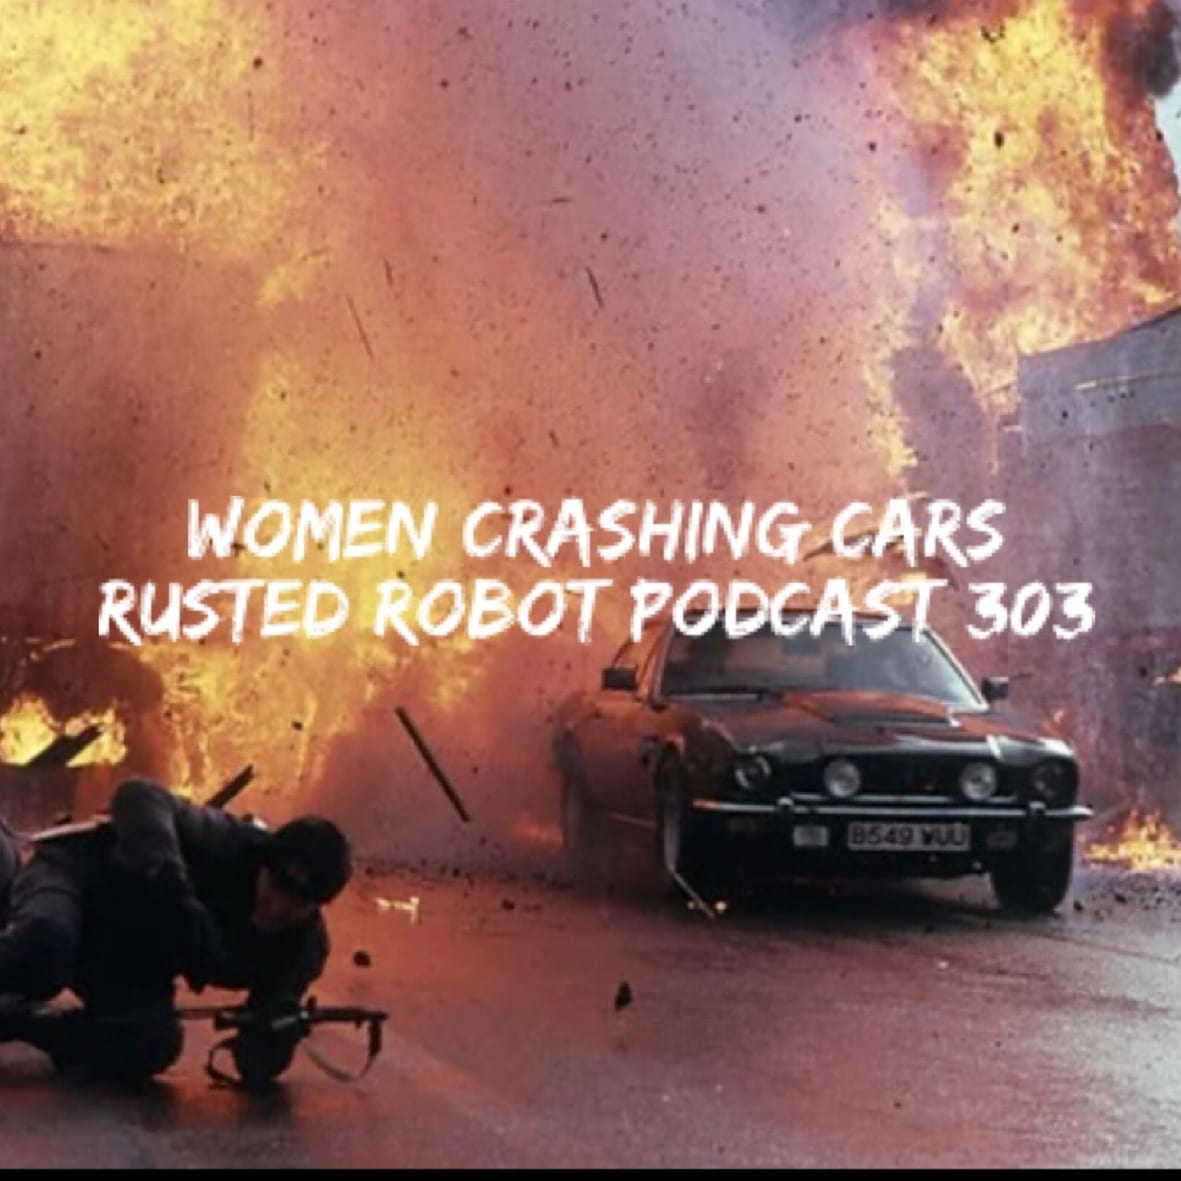 rusted robot podcast